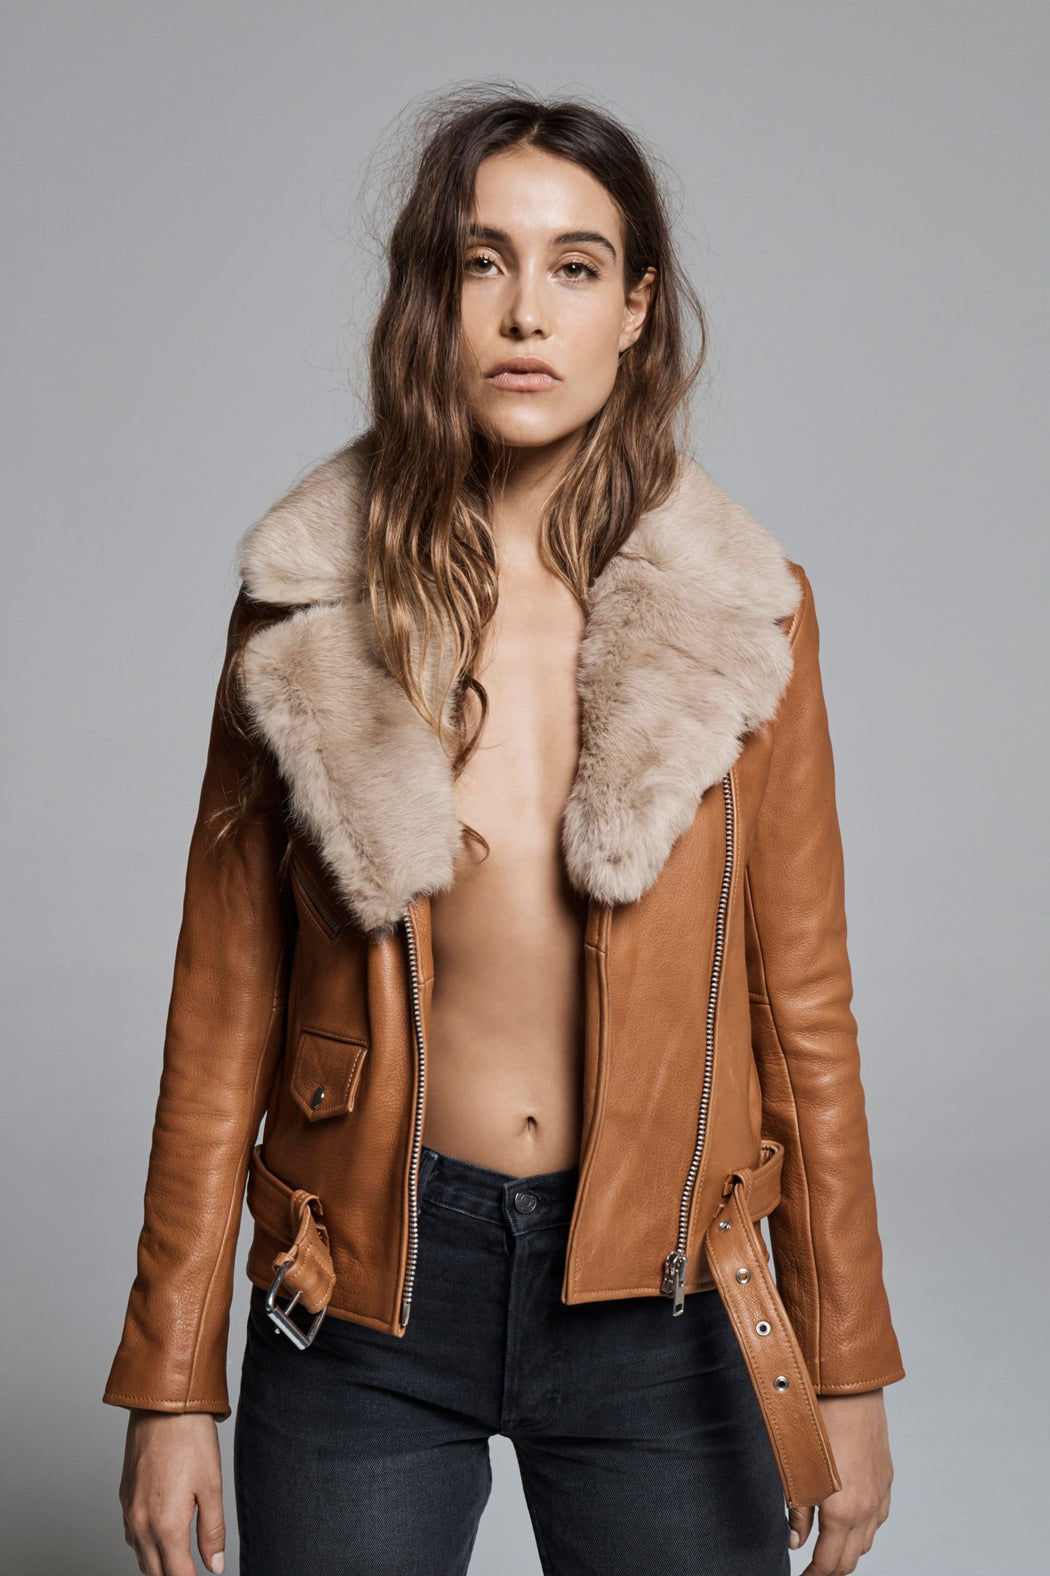 WHISKEY EASY RIDER W/ REMOVABLE NUDE FAUX FUR COLLAR